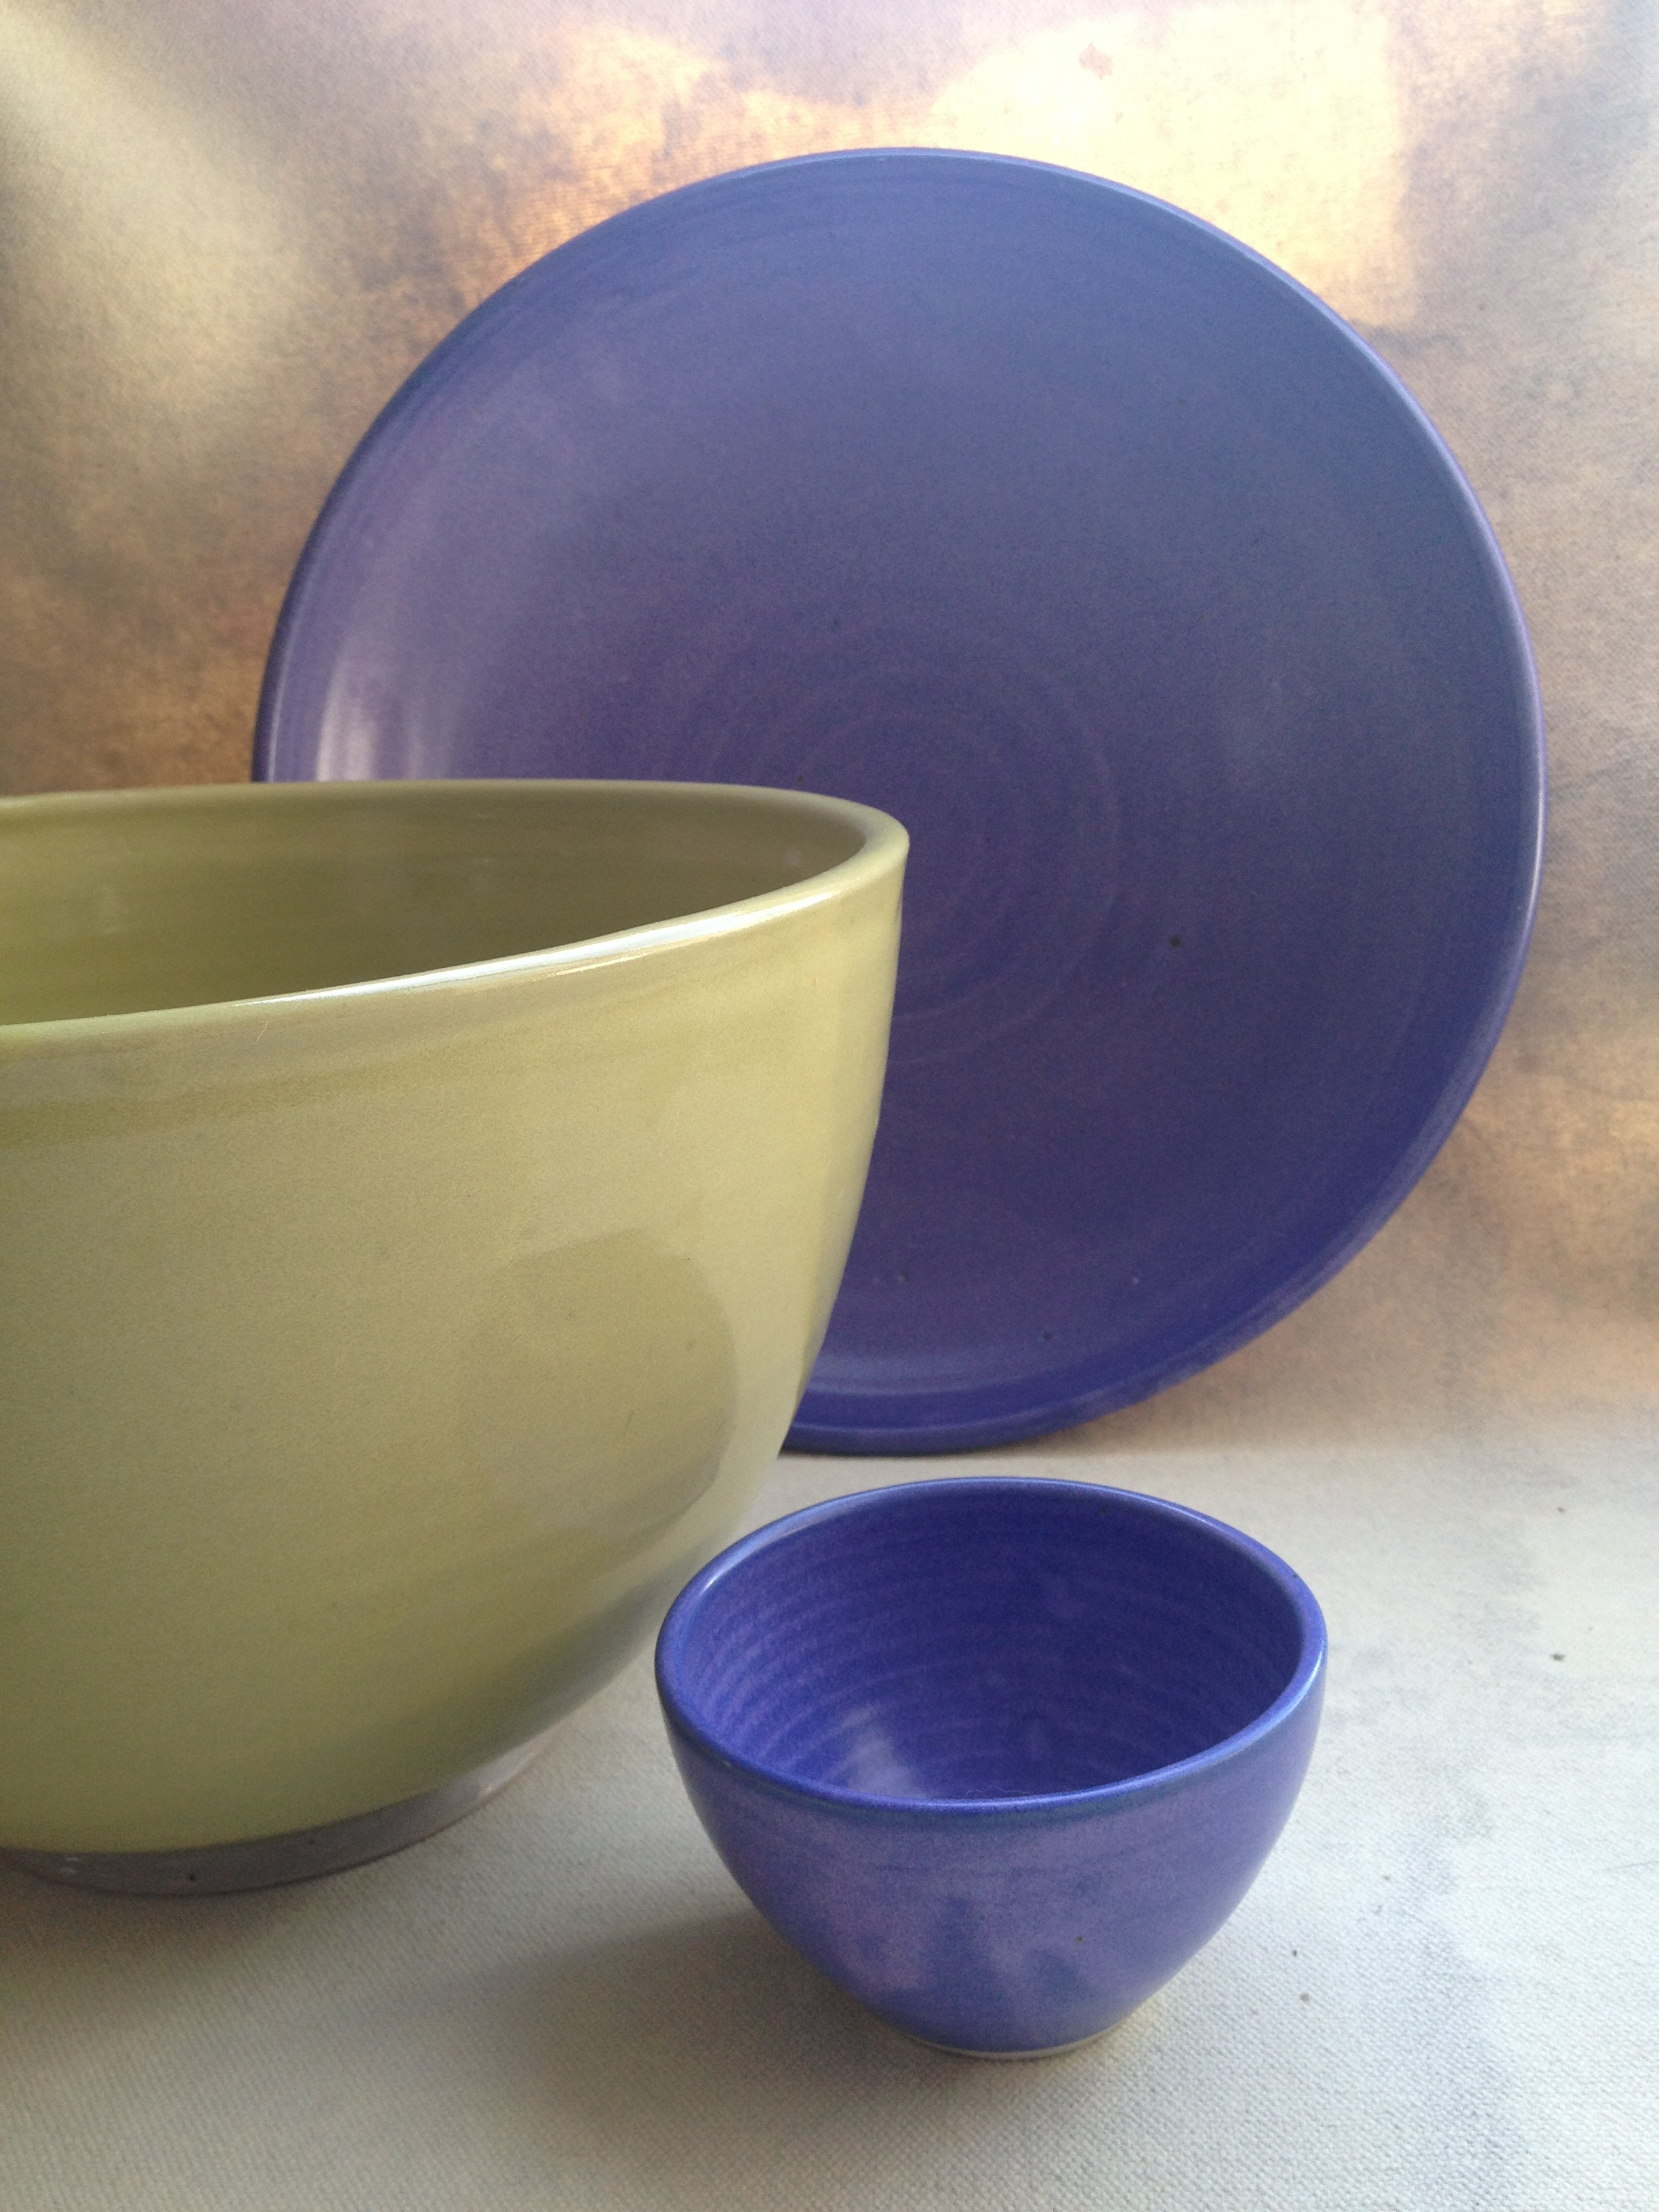 Bowls come in many shapes & sizes